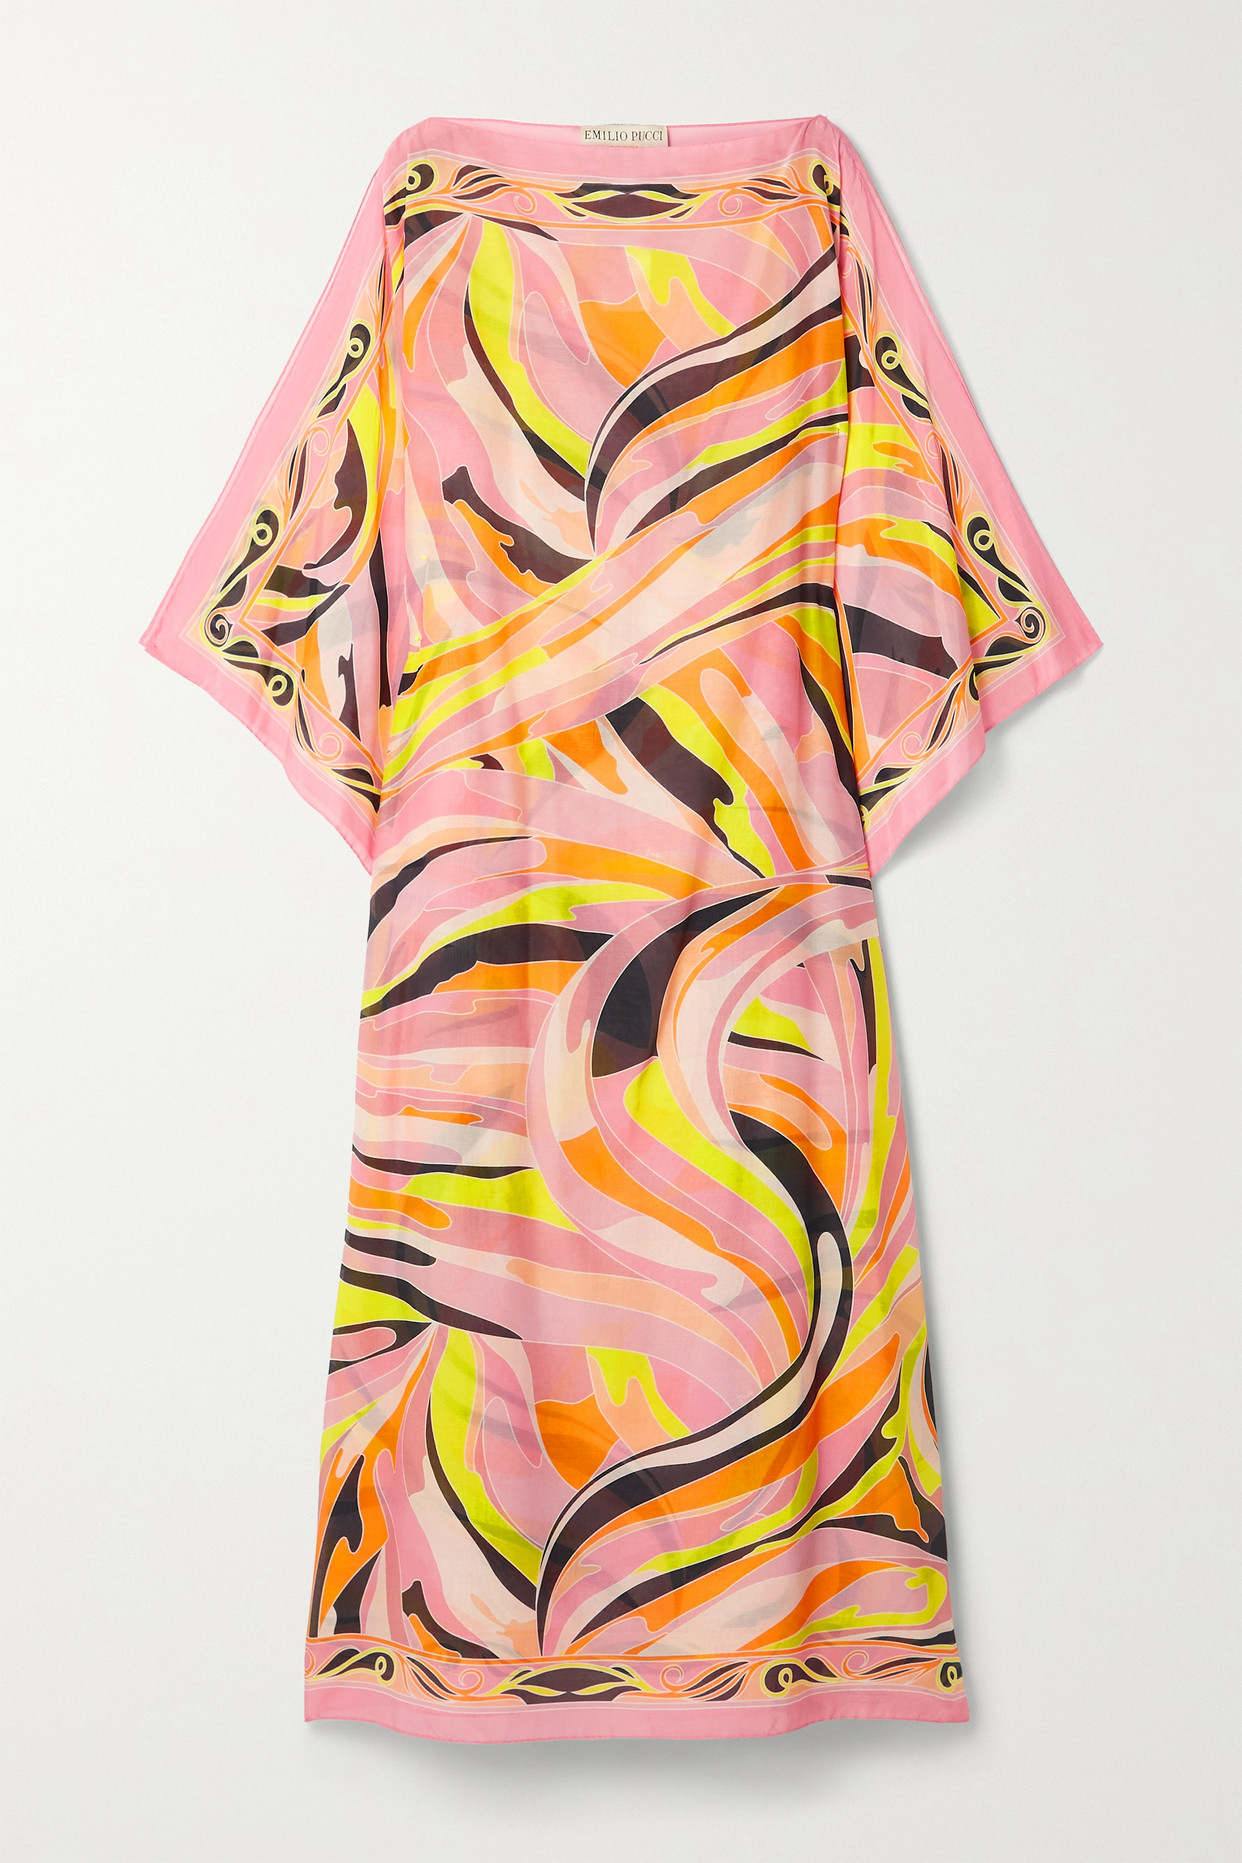 EMILIO PUCCI - + Net Sustain Printed Cotton And Silk-blend Voile Kaftan - Pink - One size